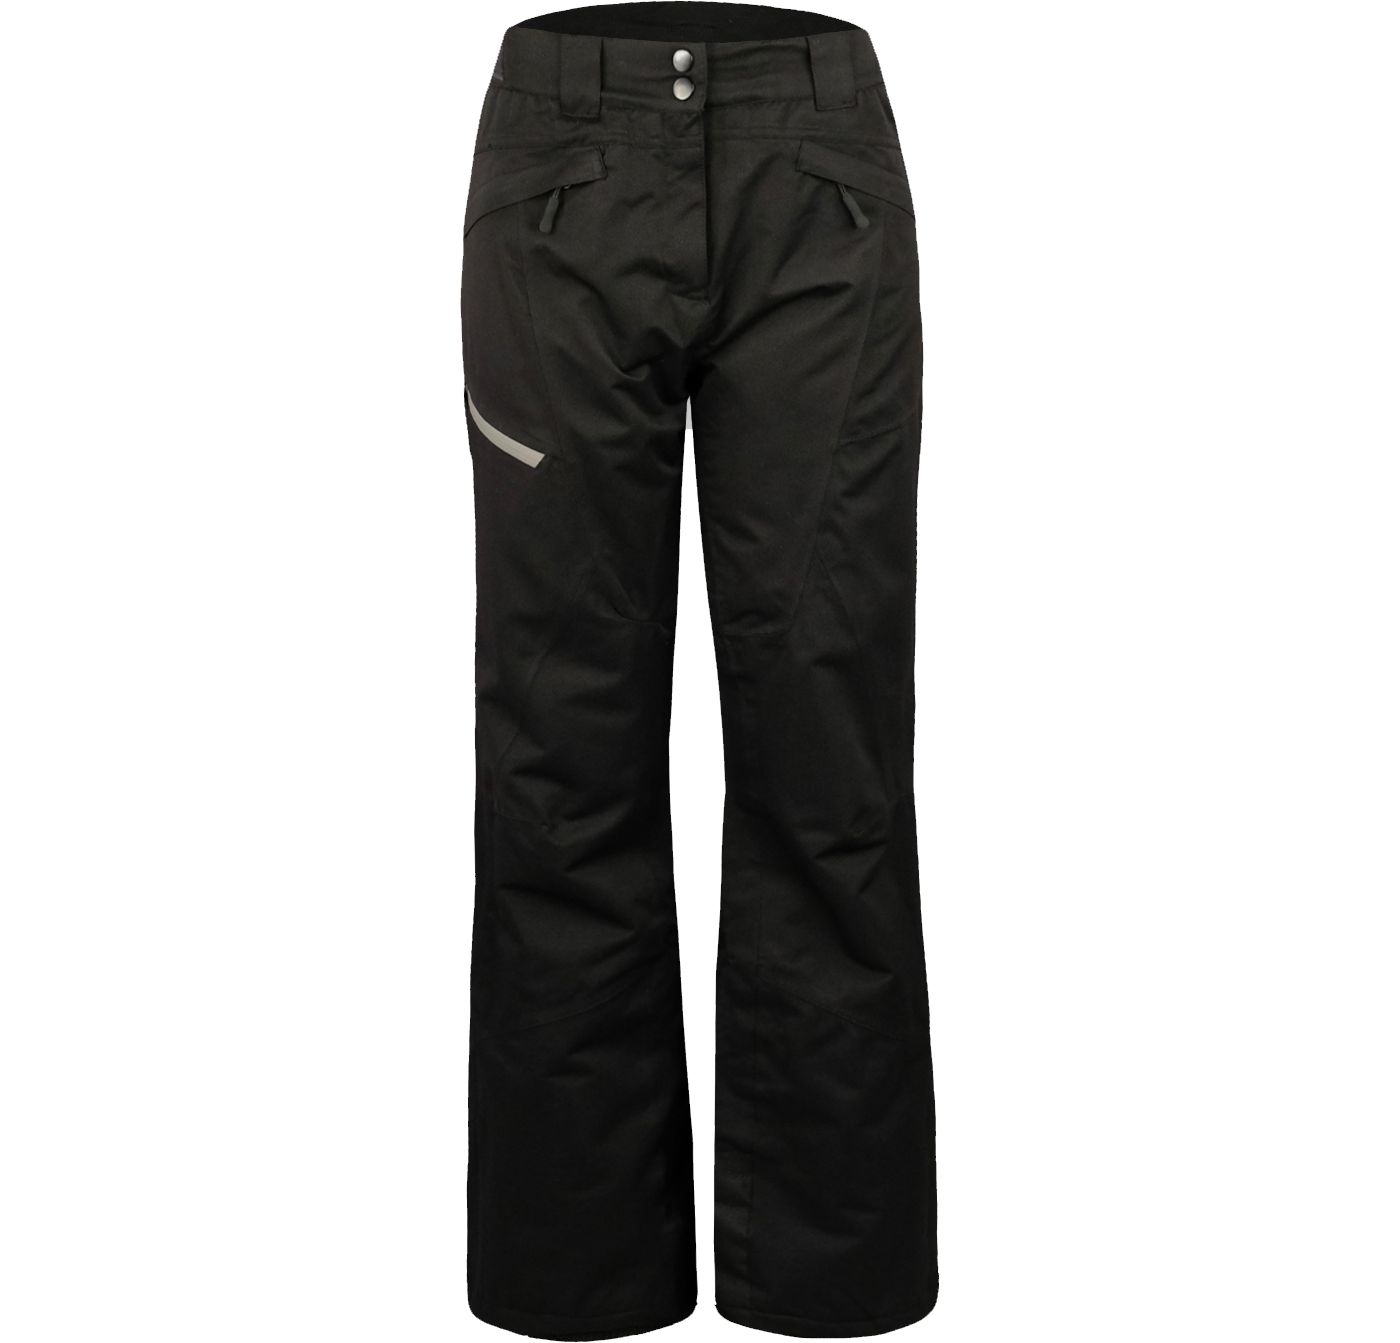 Outdoor Gear Women's Molly Insulated Pants